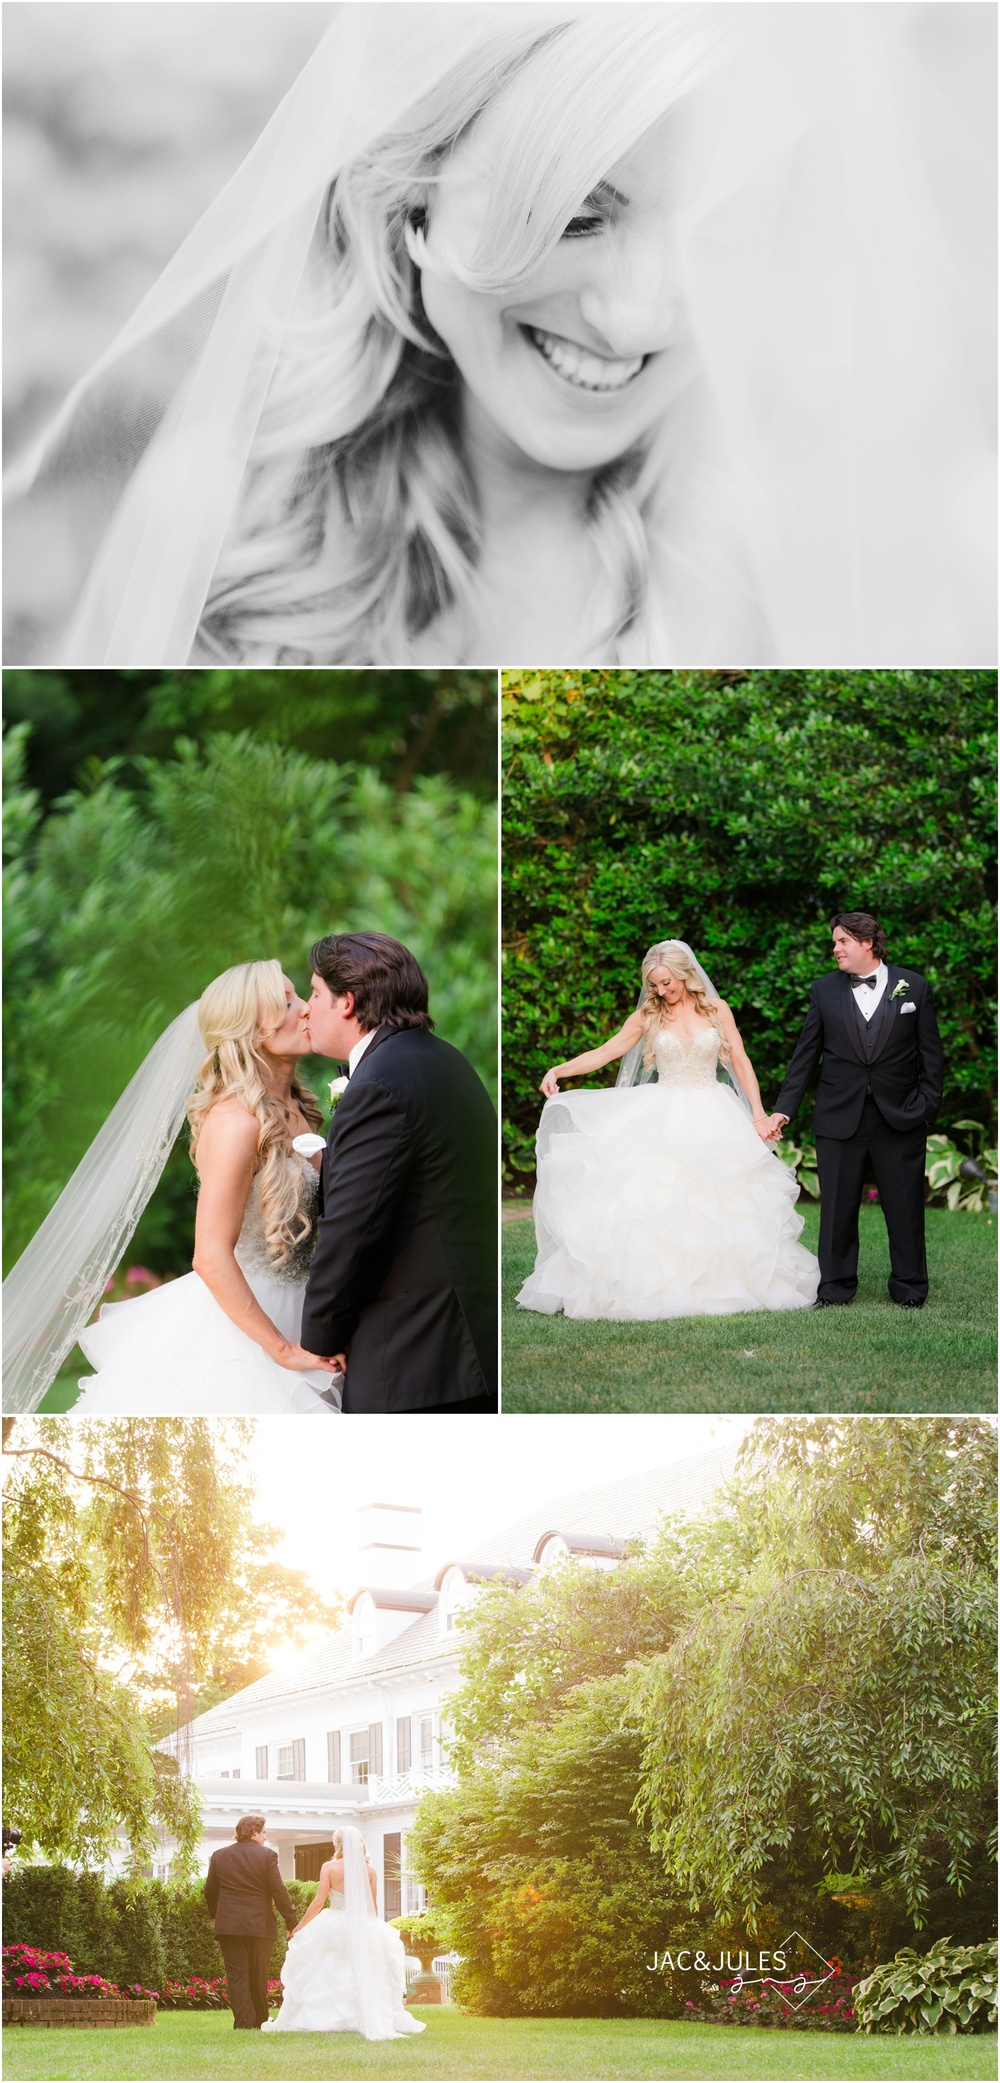 Bride and groom photos at The Shadowbrook in Shrewsbury, NJ.